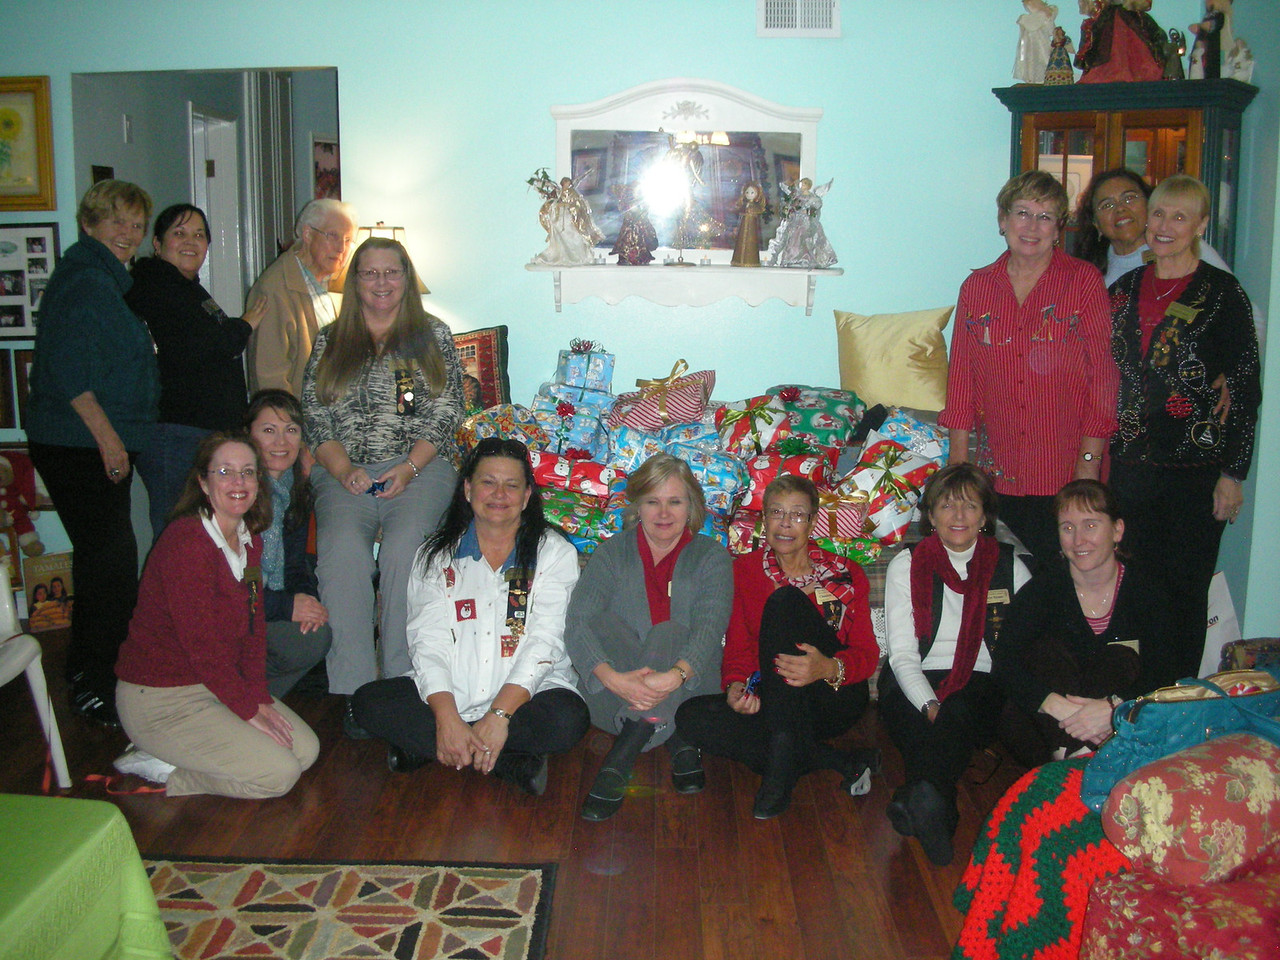 Gamma Zeta Chapter and Alpha Chi Chapter wrapping gifts for the Rio Hondo Temporary Shelter Xmas 2010 at Angela Loya's home.